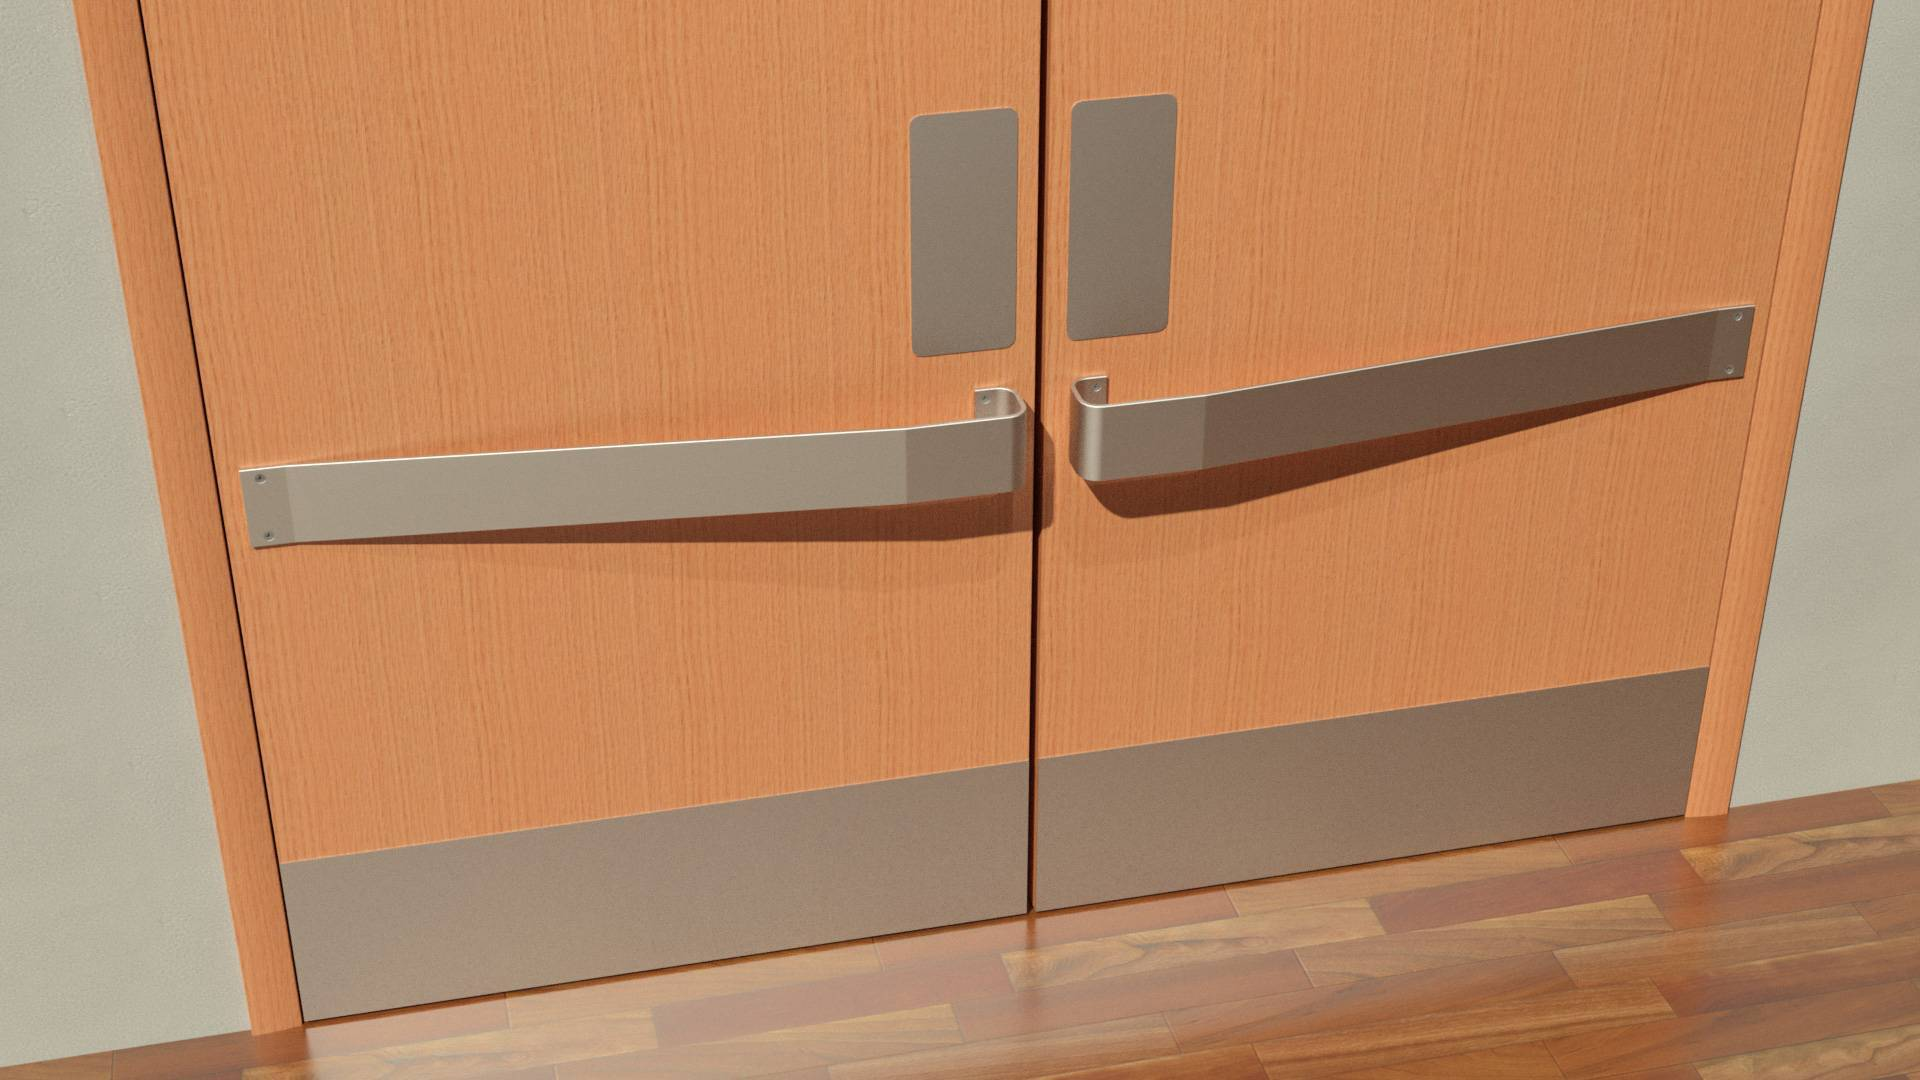 Le Meilleur Door Protection Kick Plates Door Frame Protection From Ce Mois Ci